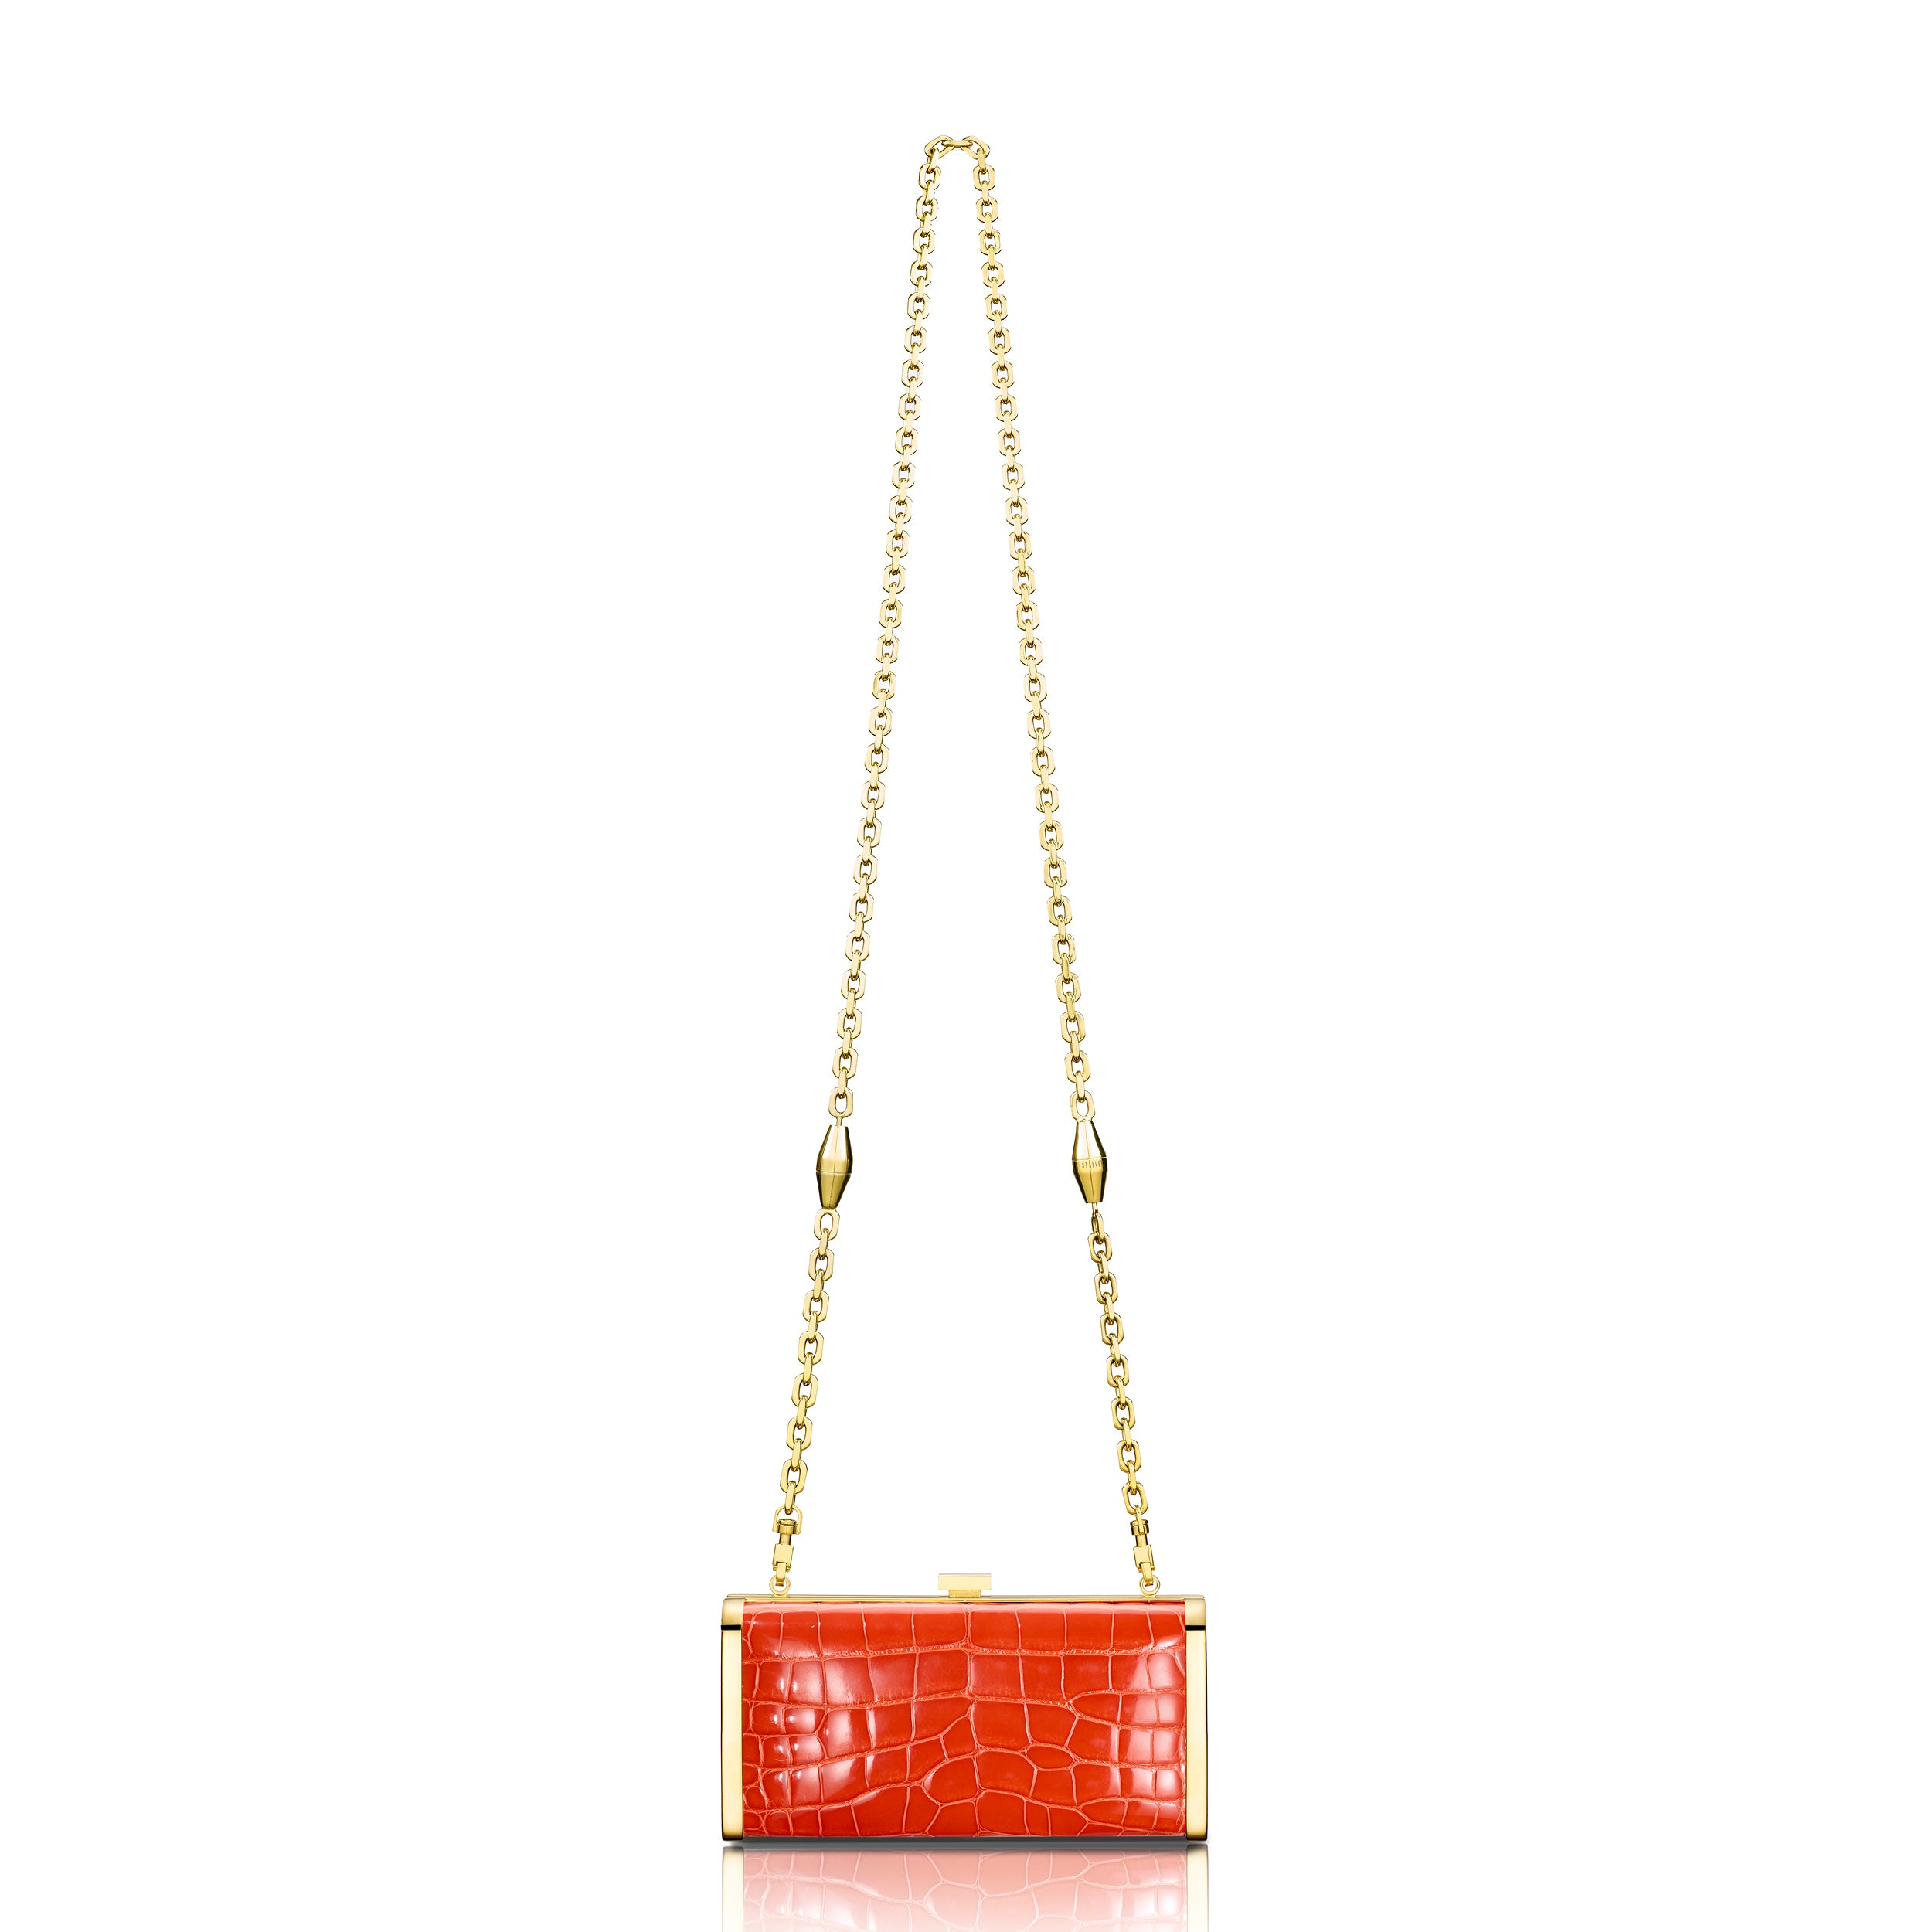 Square Clutch - Tiger Orange Alligator